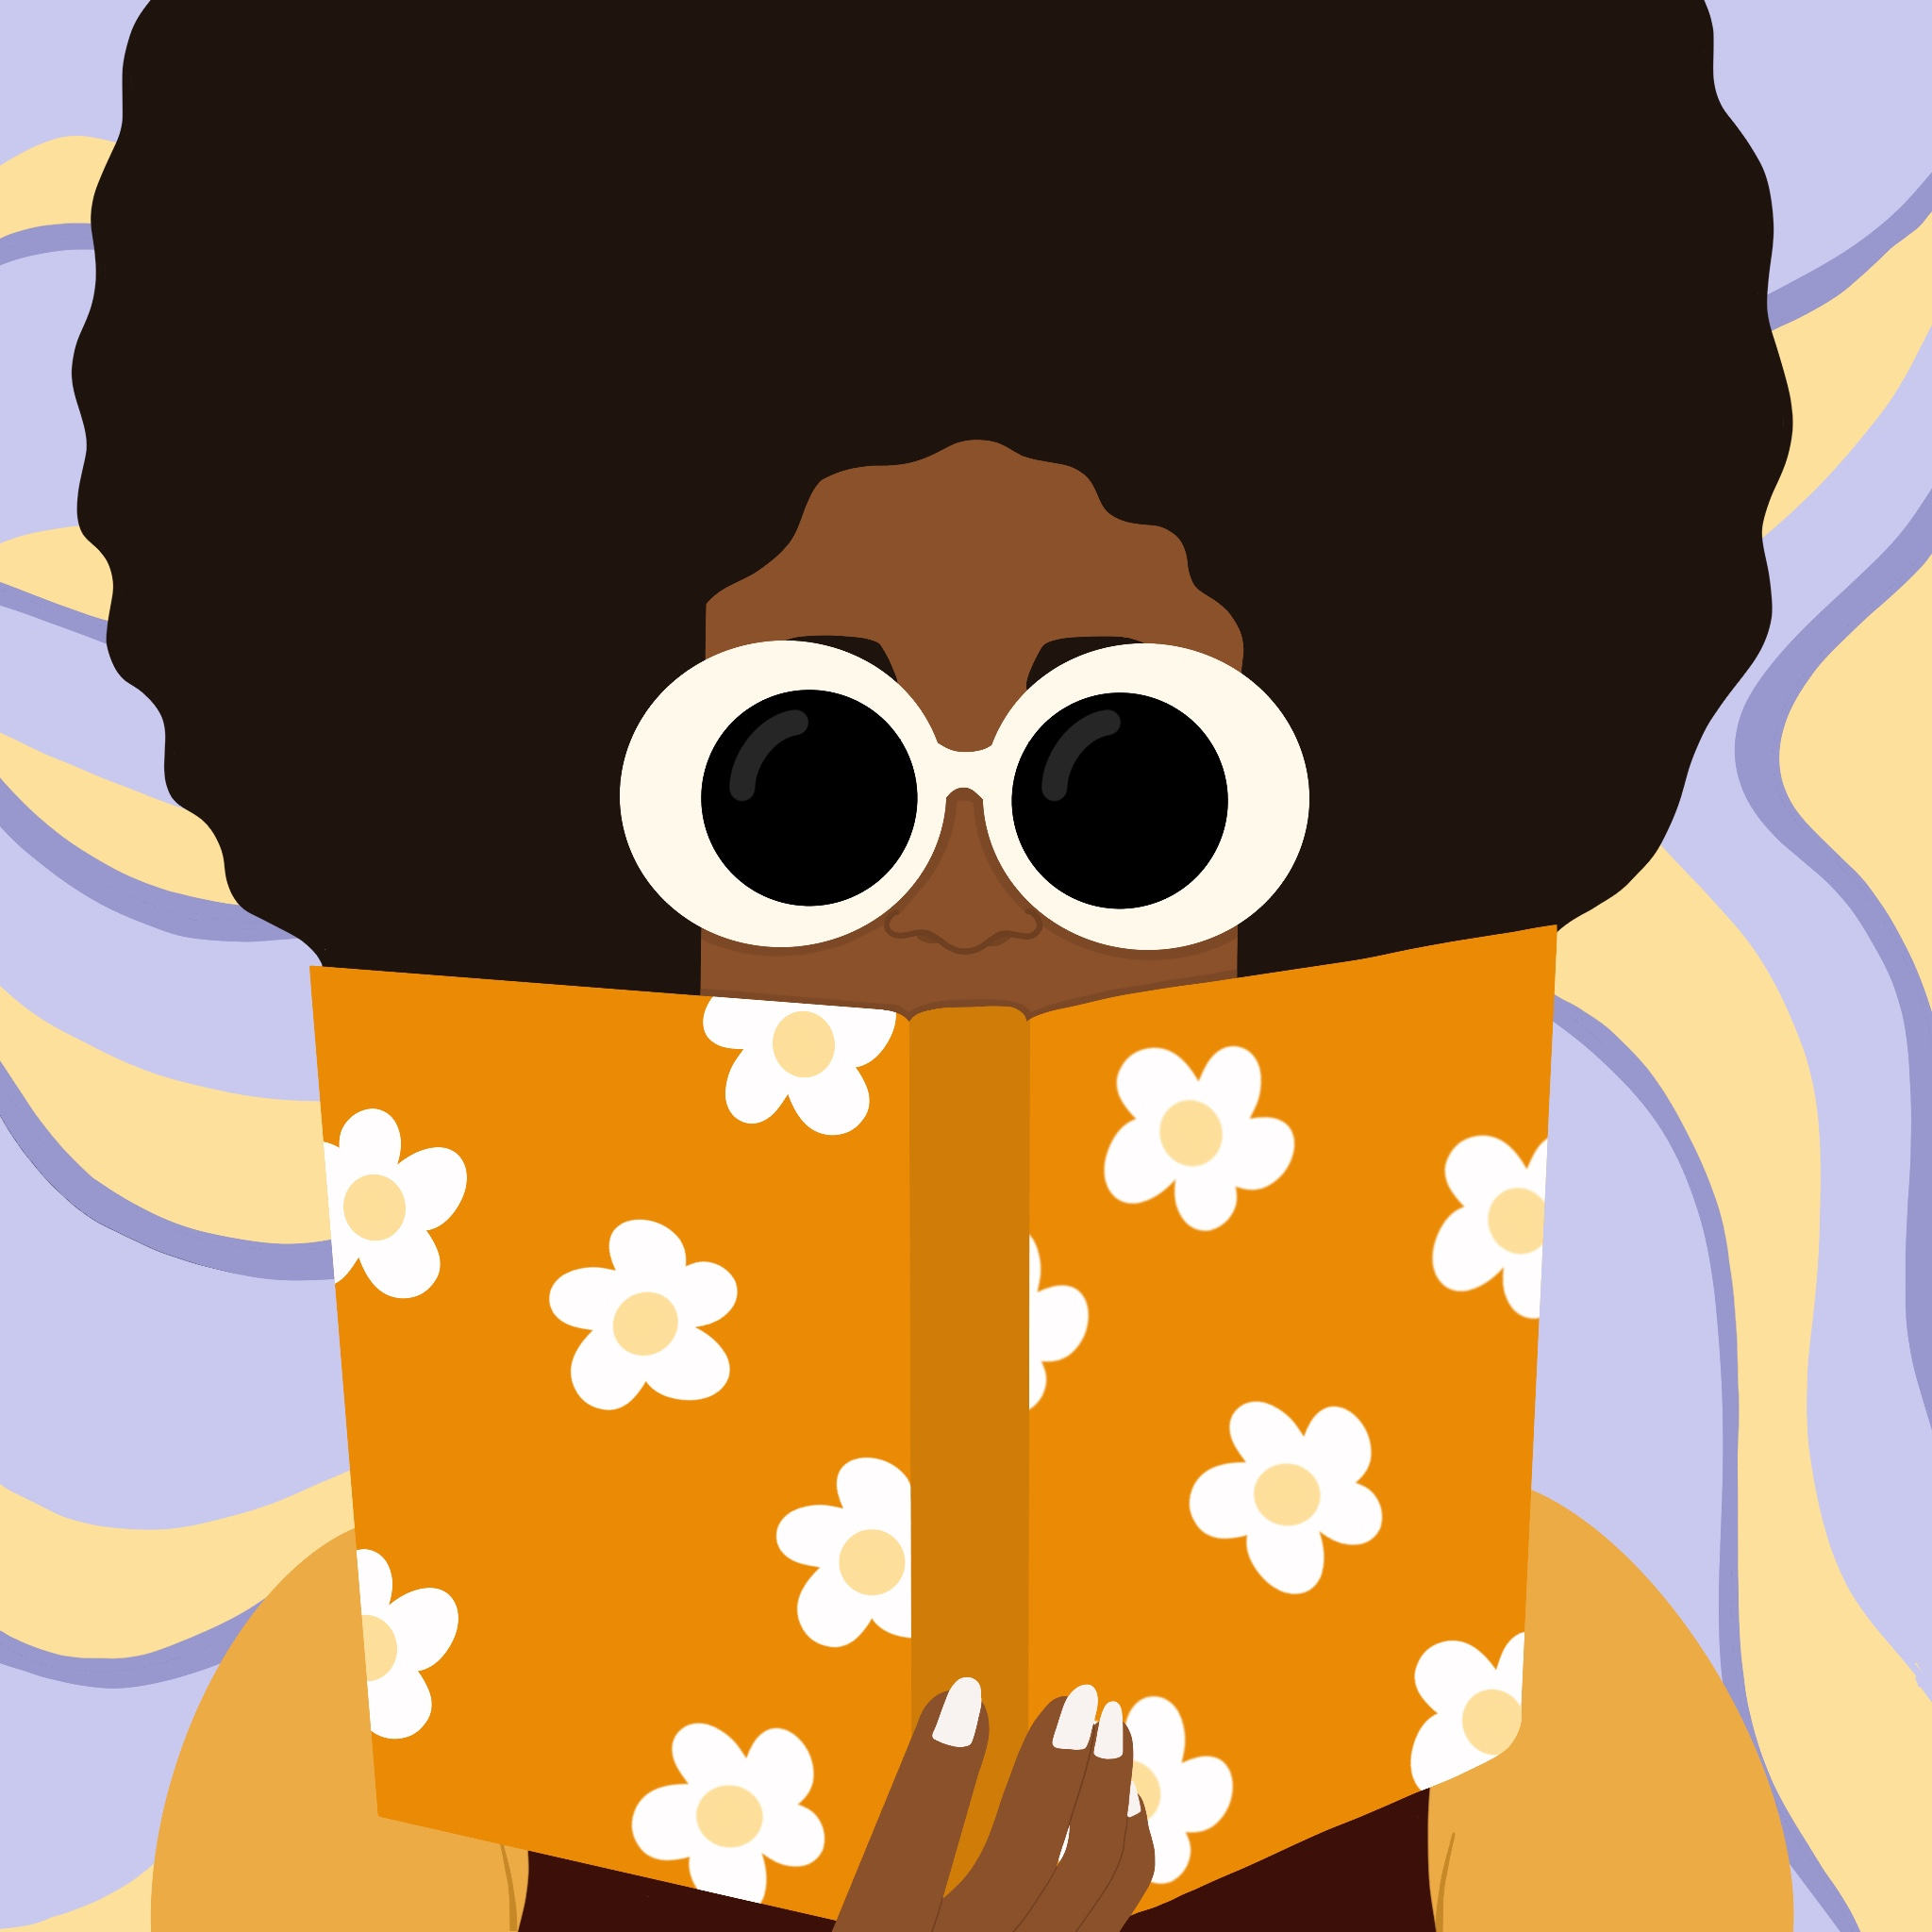 A woman with a large afro and 60s-era chunky white sunglasses reads an orange book covered in flowers over a flowy background.